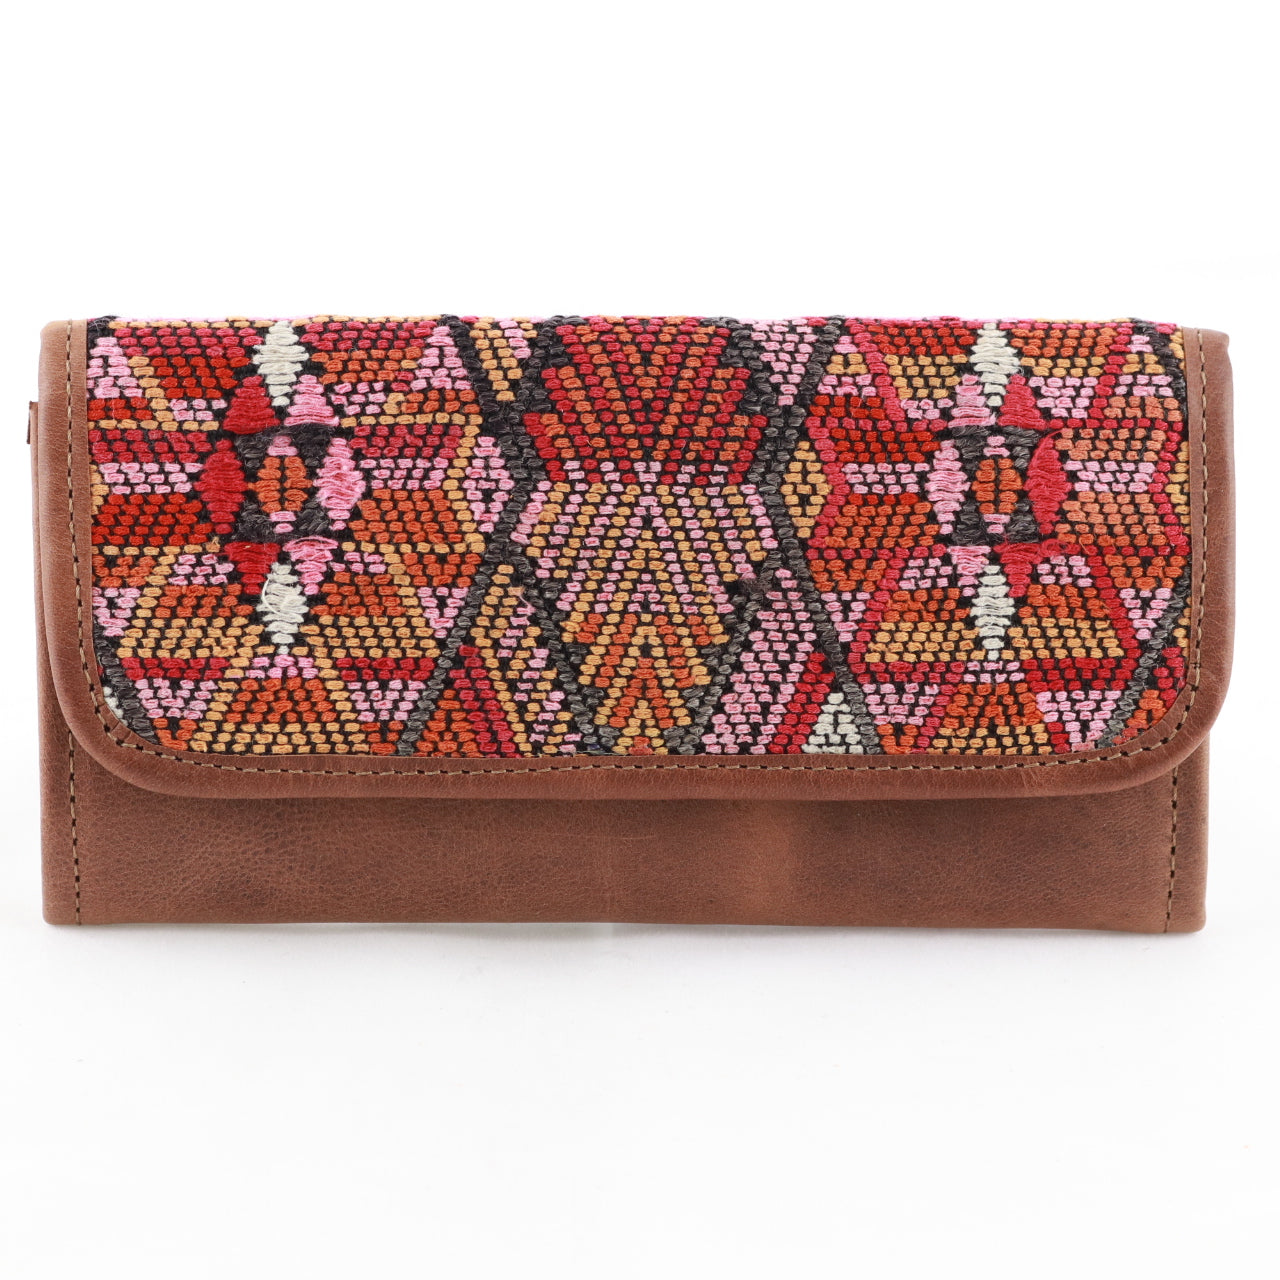 Huipil wallet in tan leather (tri-fold)